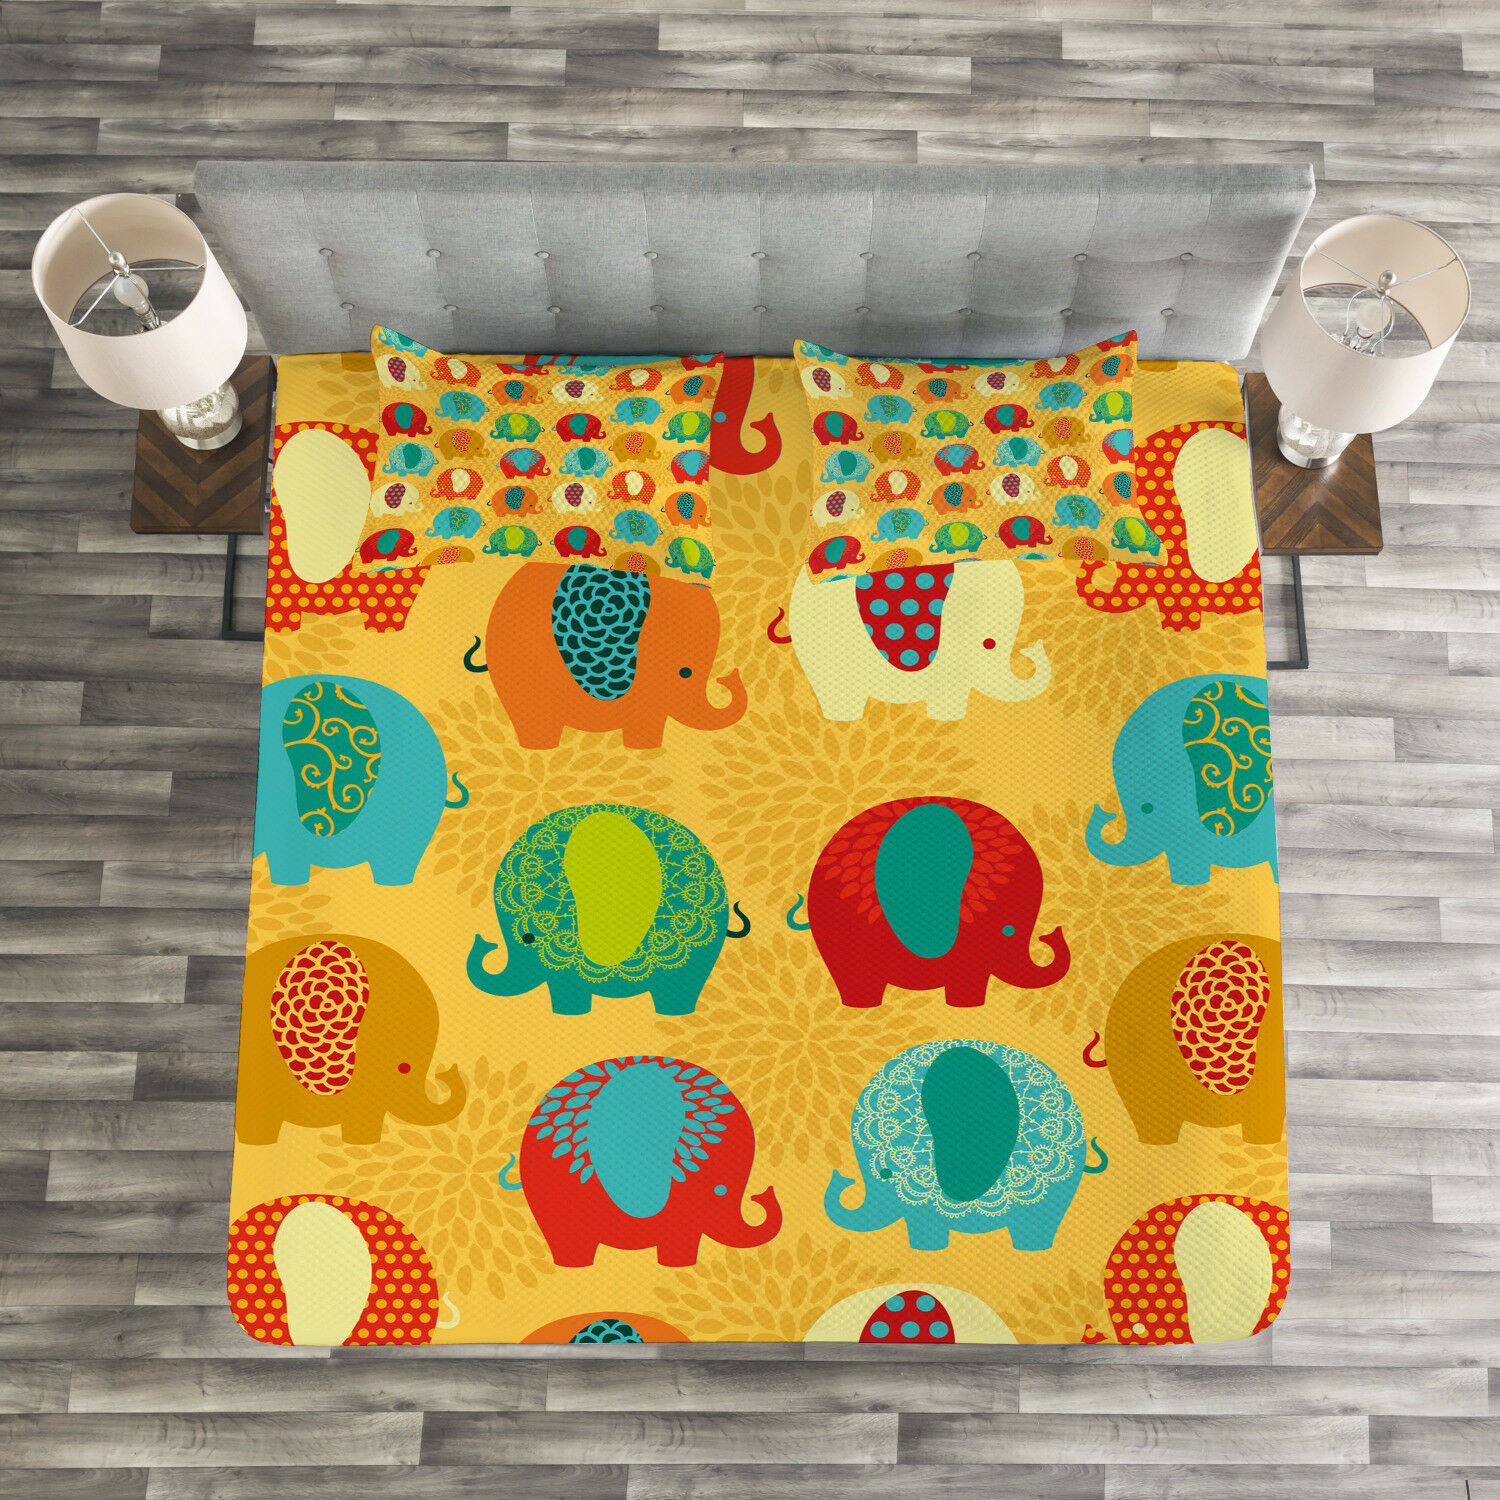 Elephant Nursery Quilted Bedspread & Pillow Shams Set, Ethnic Culture Print